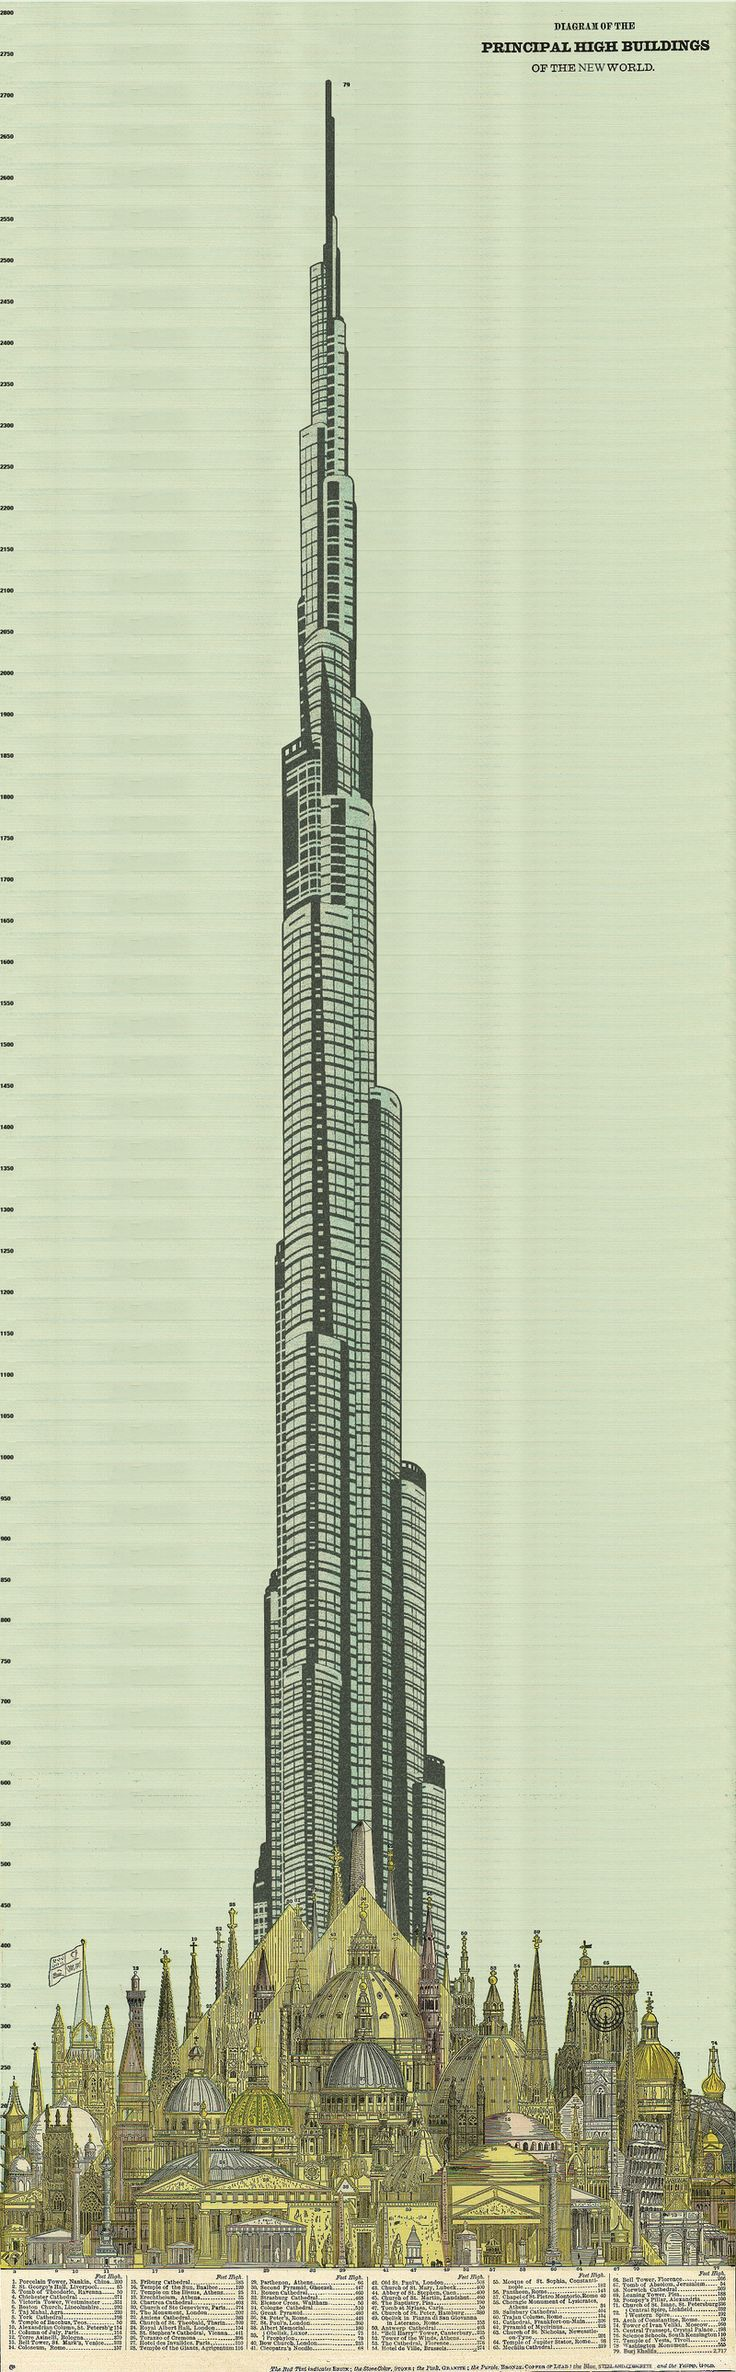 67 curated burj khalifa grand structure ideas by for Burj khalifa sketch